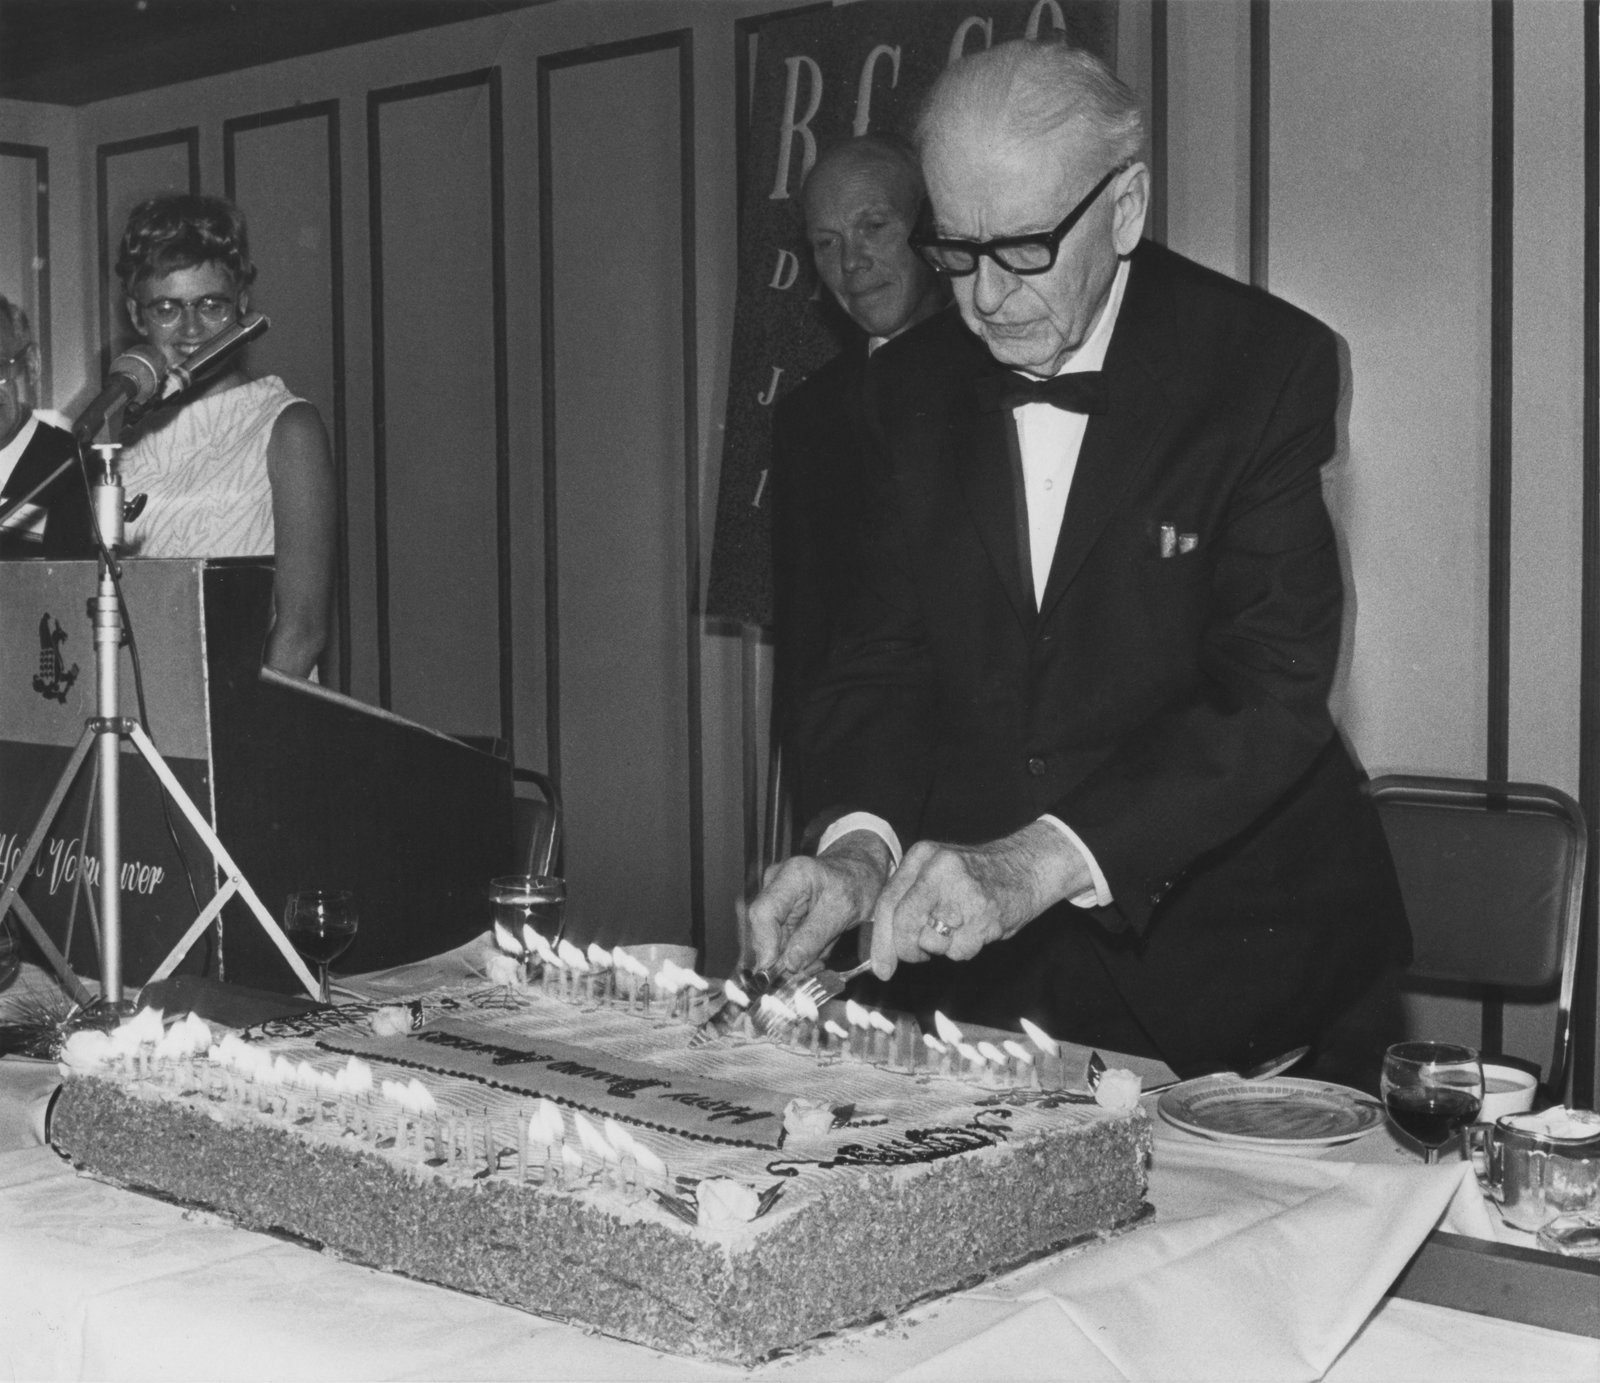 R.G. Geen cutting cake at Royal Canadian College of Organists National Convention, 1969